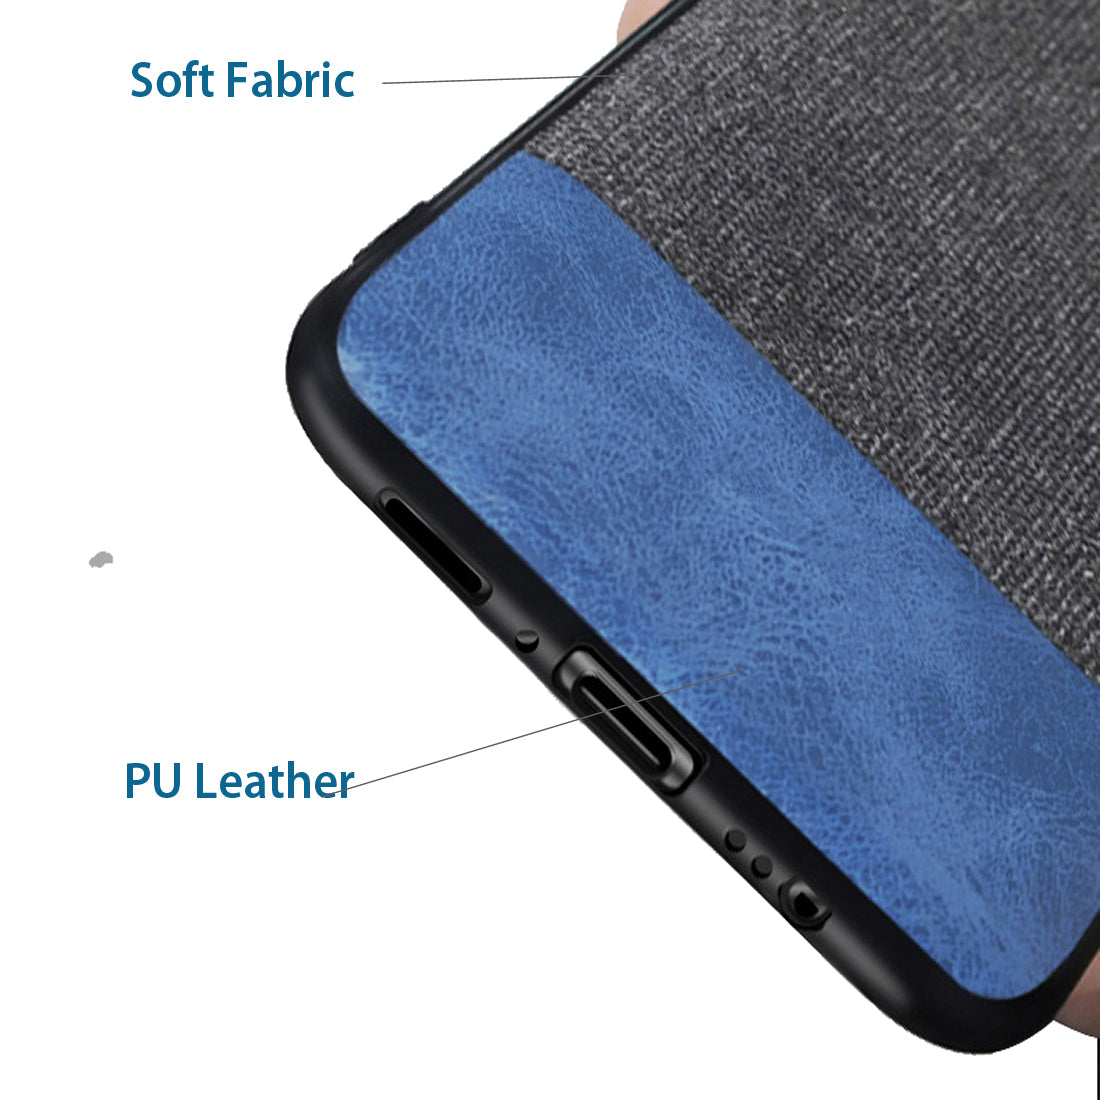 Full Fabric + Leather Hybrid Protective Case Cover for Samsung Galaxy S9 -  Black , Blue - Mobizang